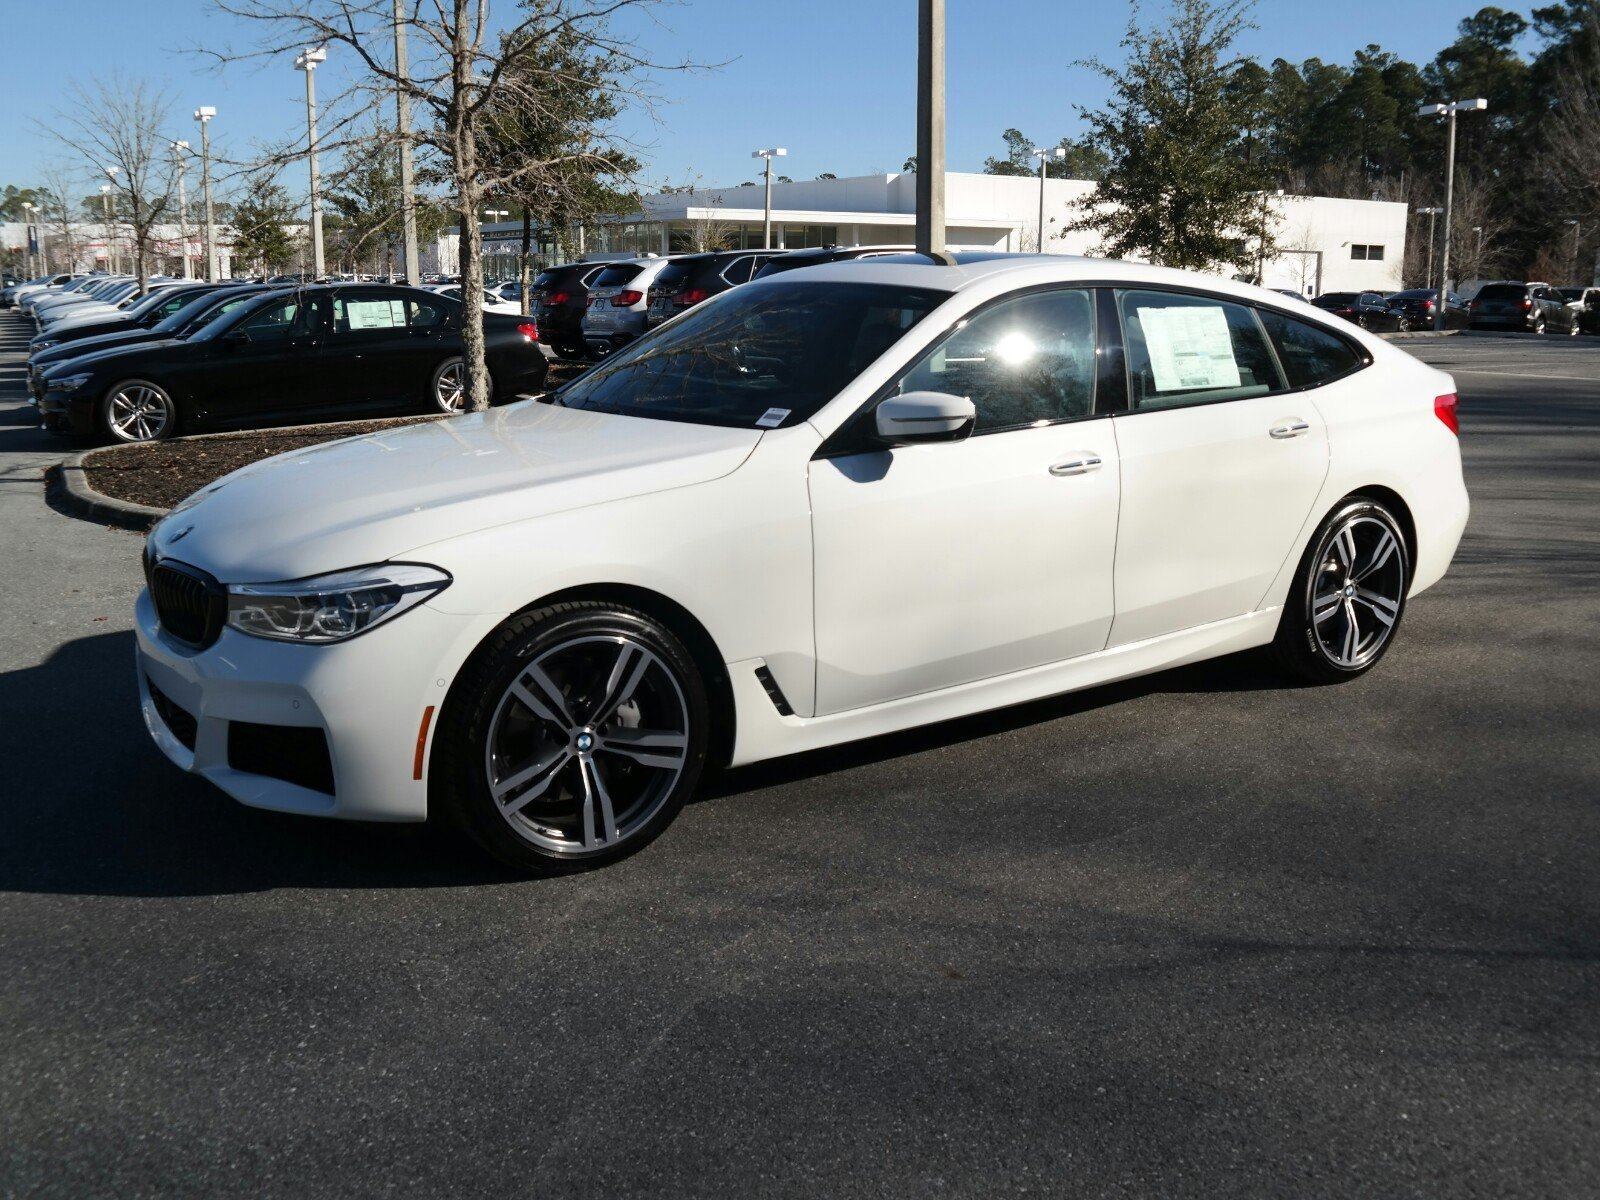 buyers turismo petrol sale gran between litre for xdrive the on able turbo cylinder gt be series will incorporates in bmw producing four australia and a select performancedrive to